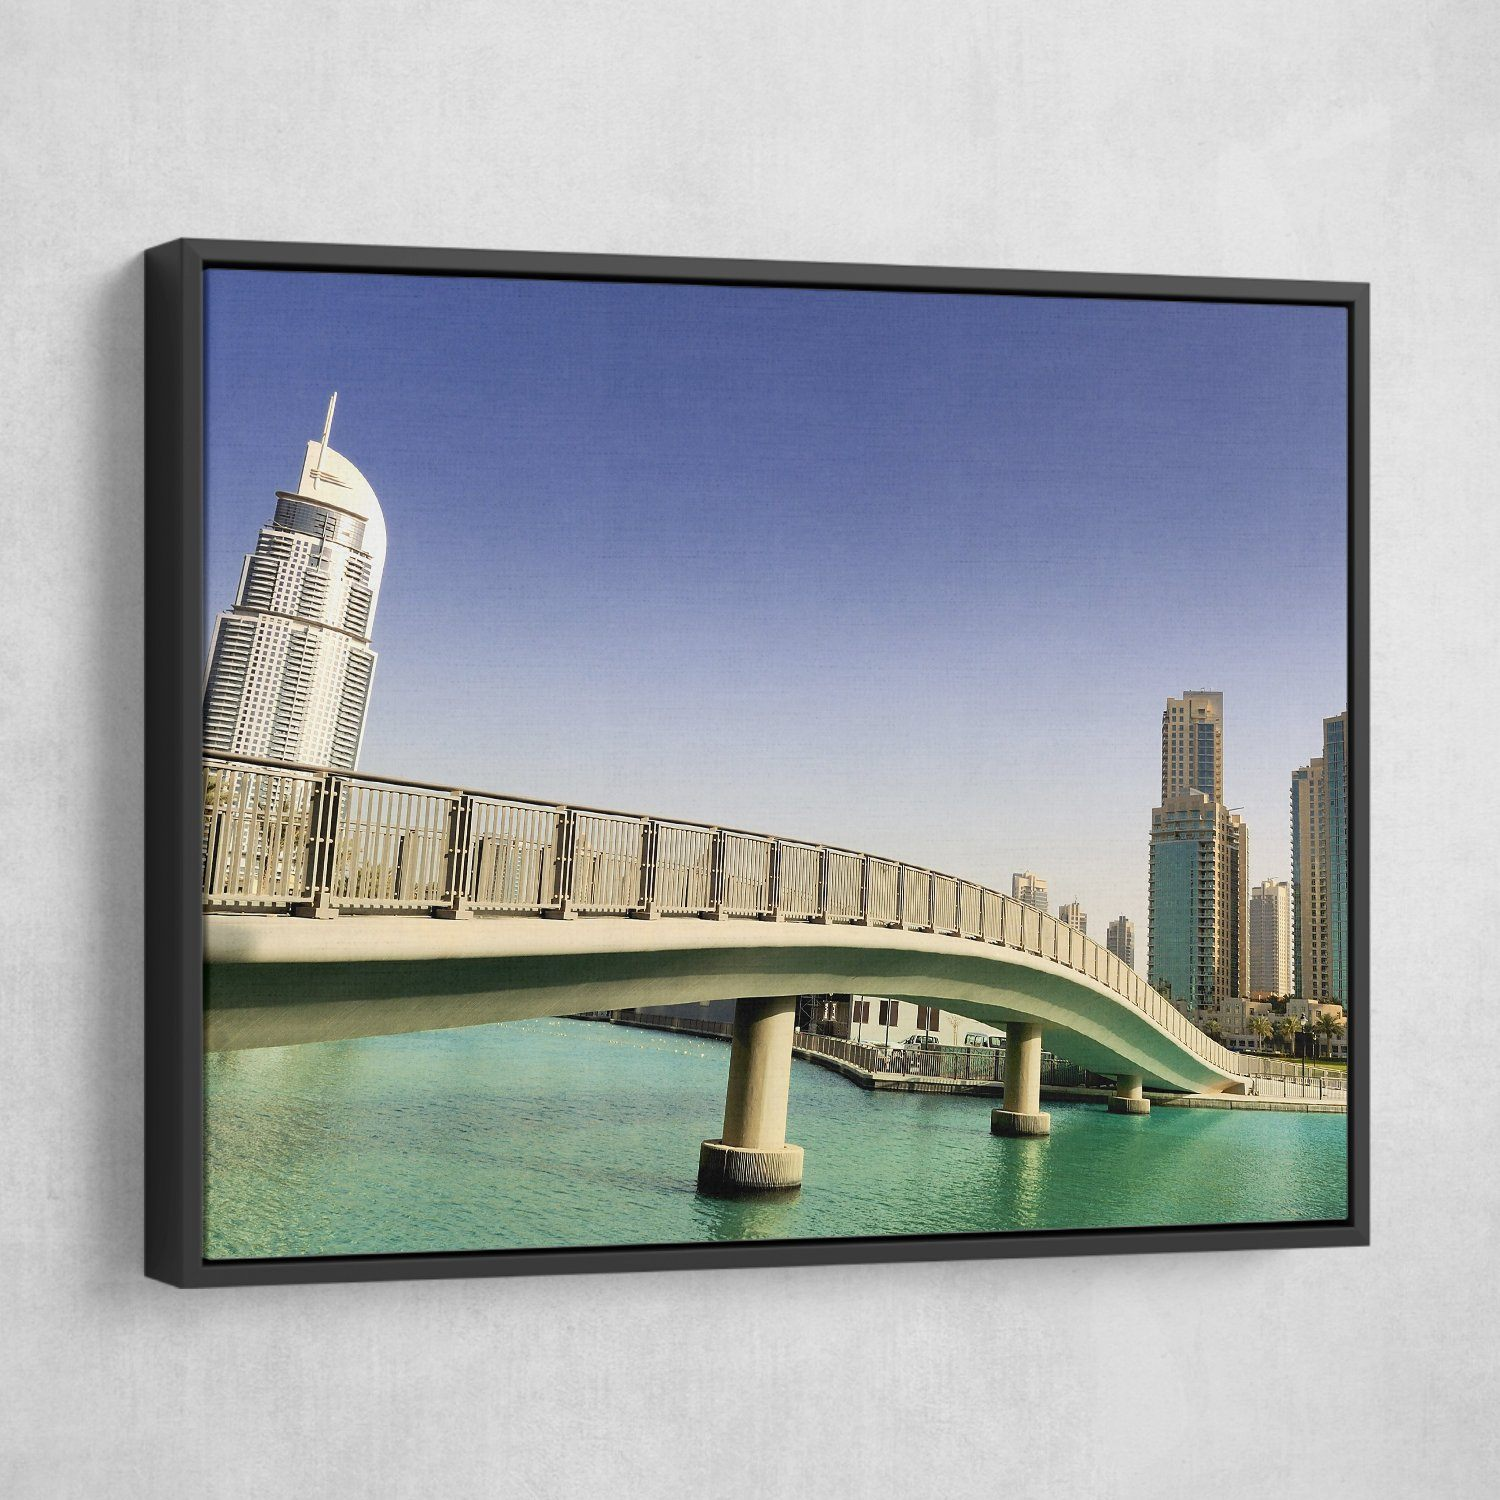 Footbridge In UAE wall art black frame